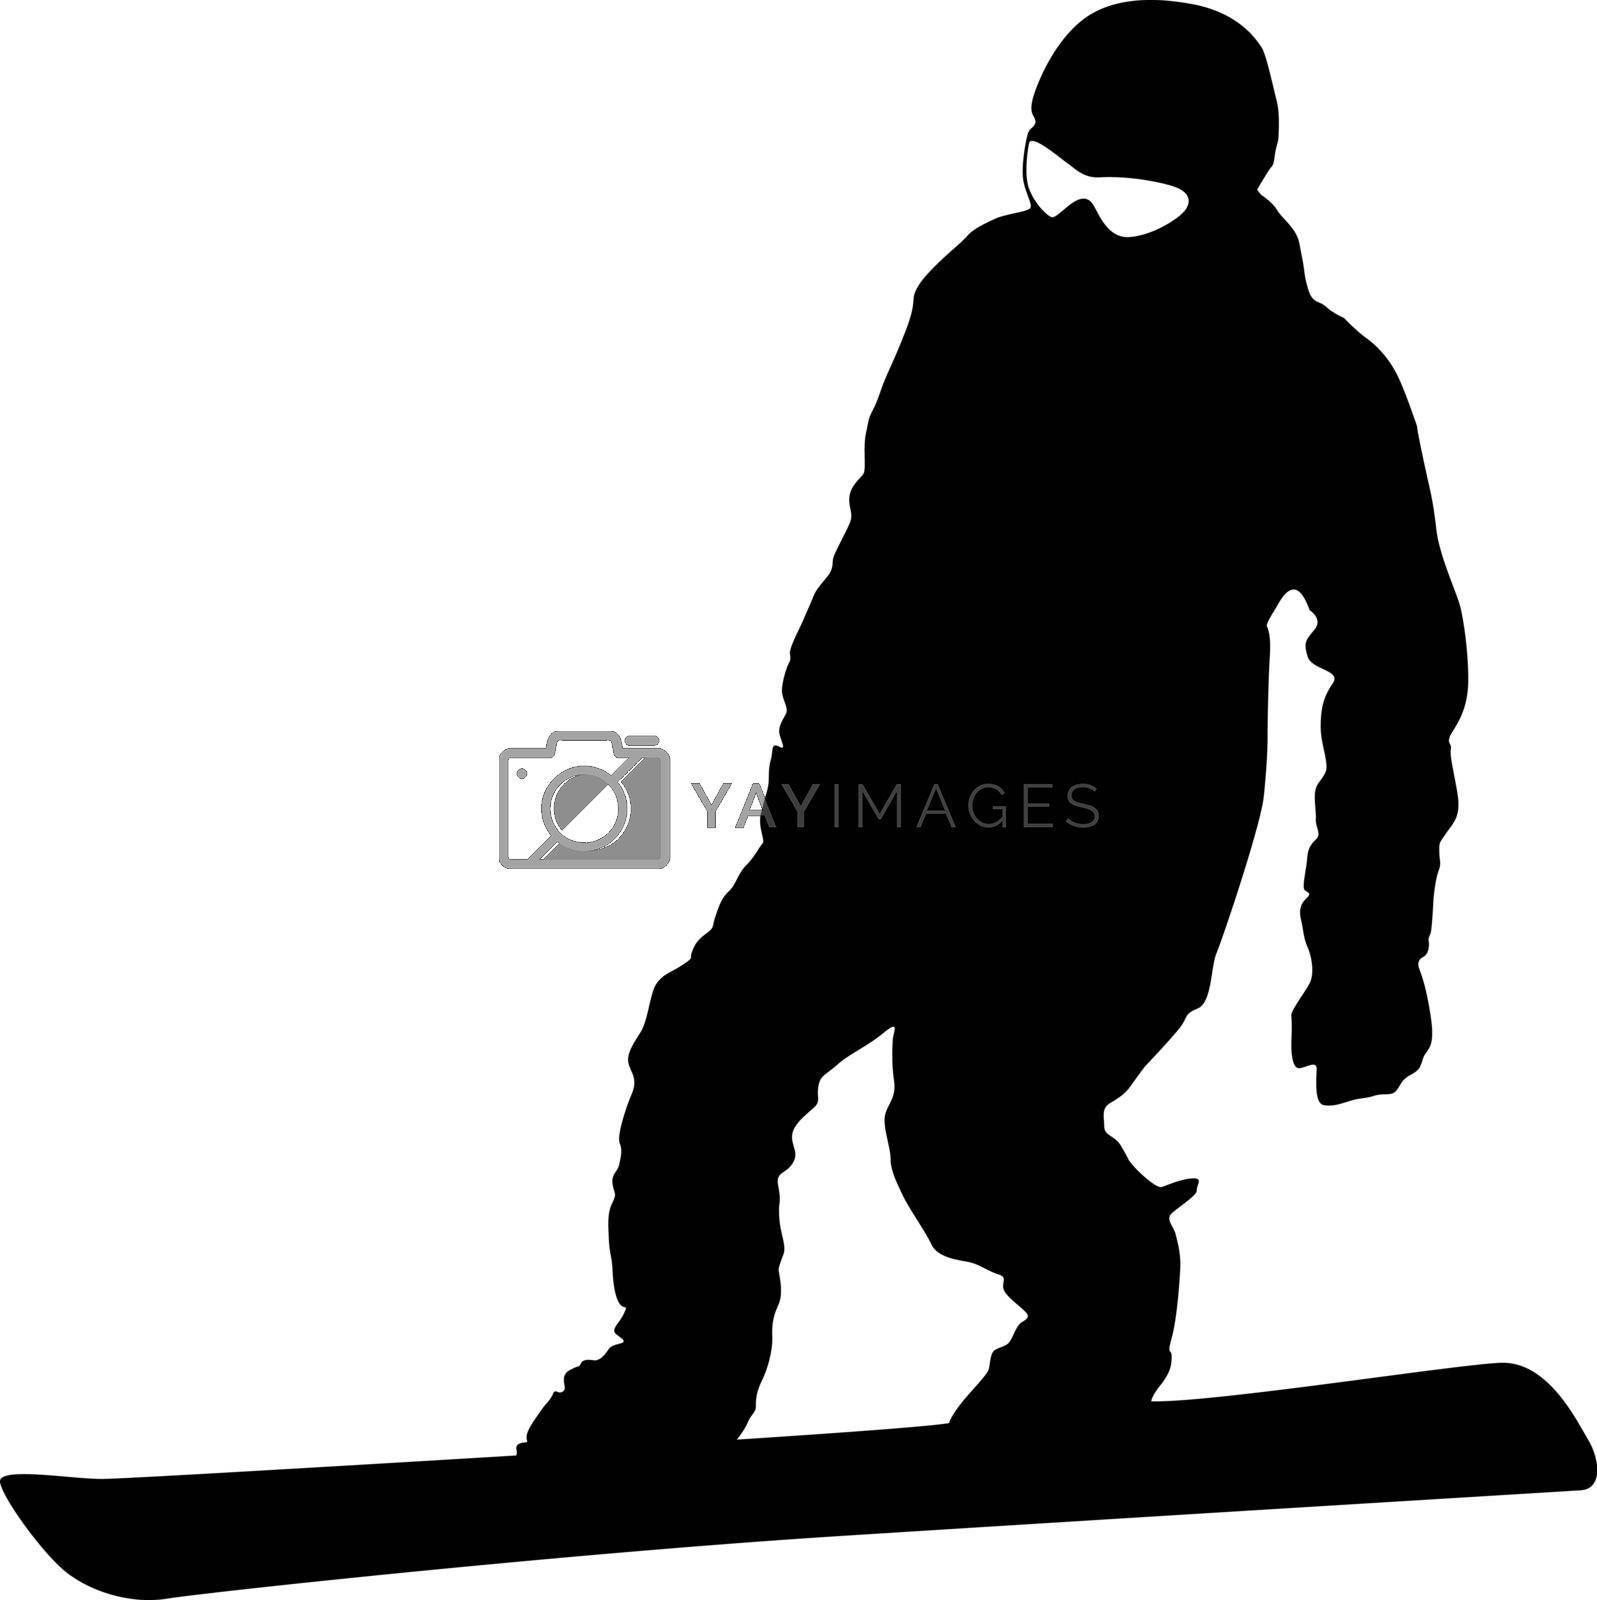 Royalty free image of Black silhouette  snowboarder on white background. Vector illust by aarrows